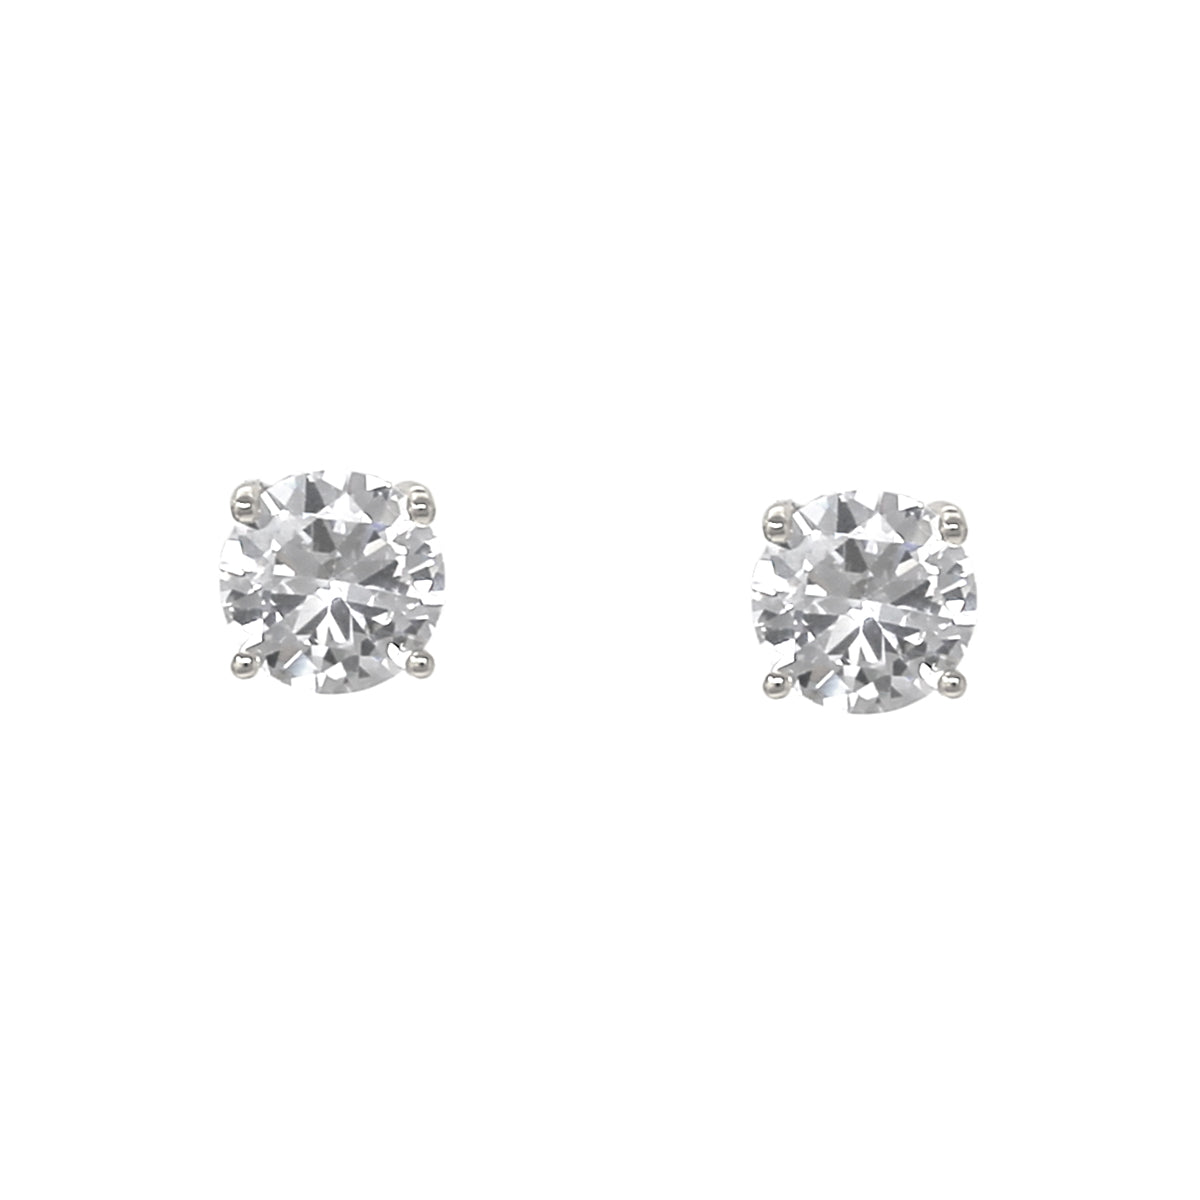 Round Cubic Zirconia Stud Earrings (10 mm)